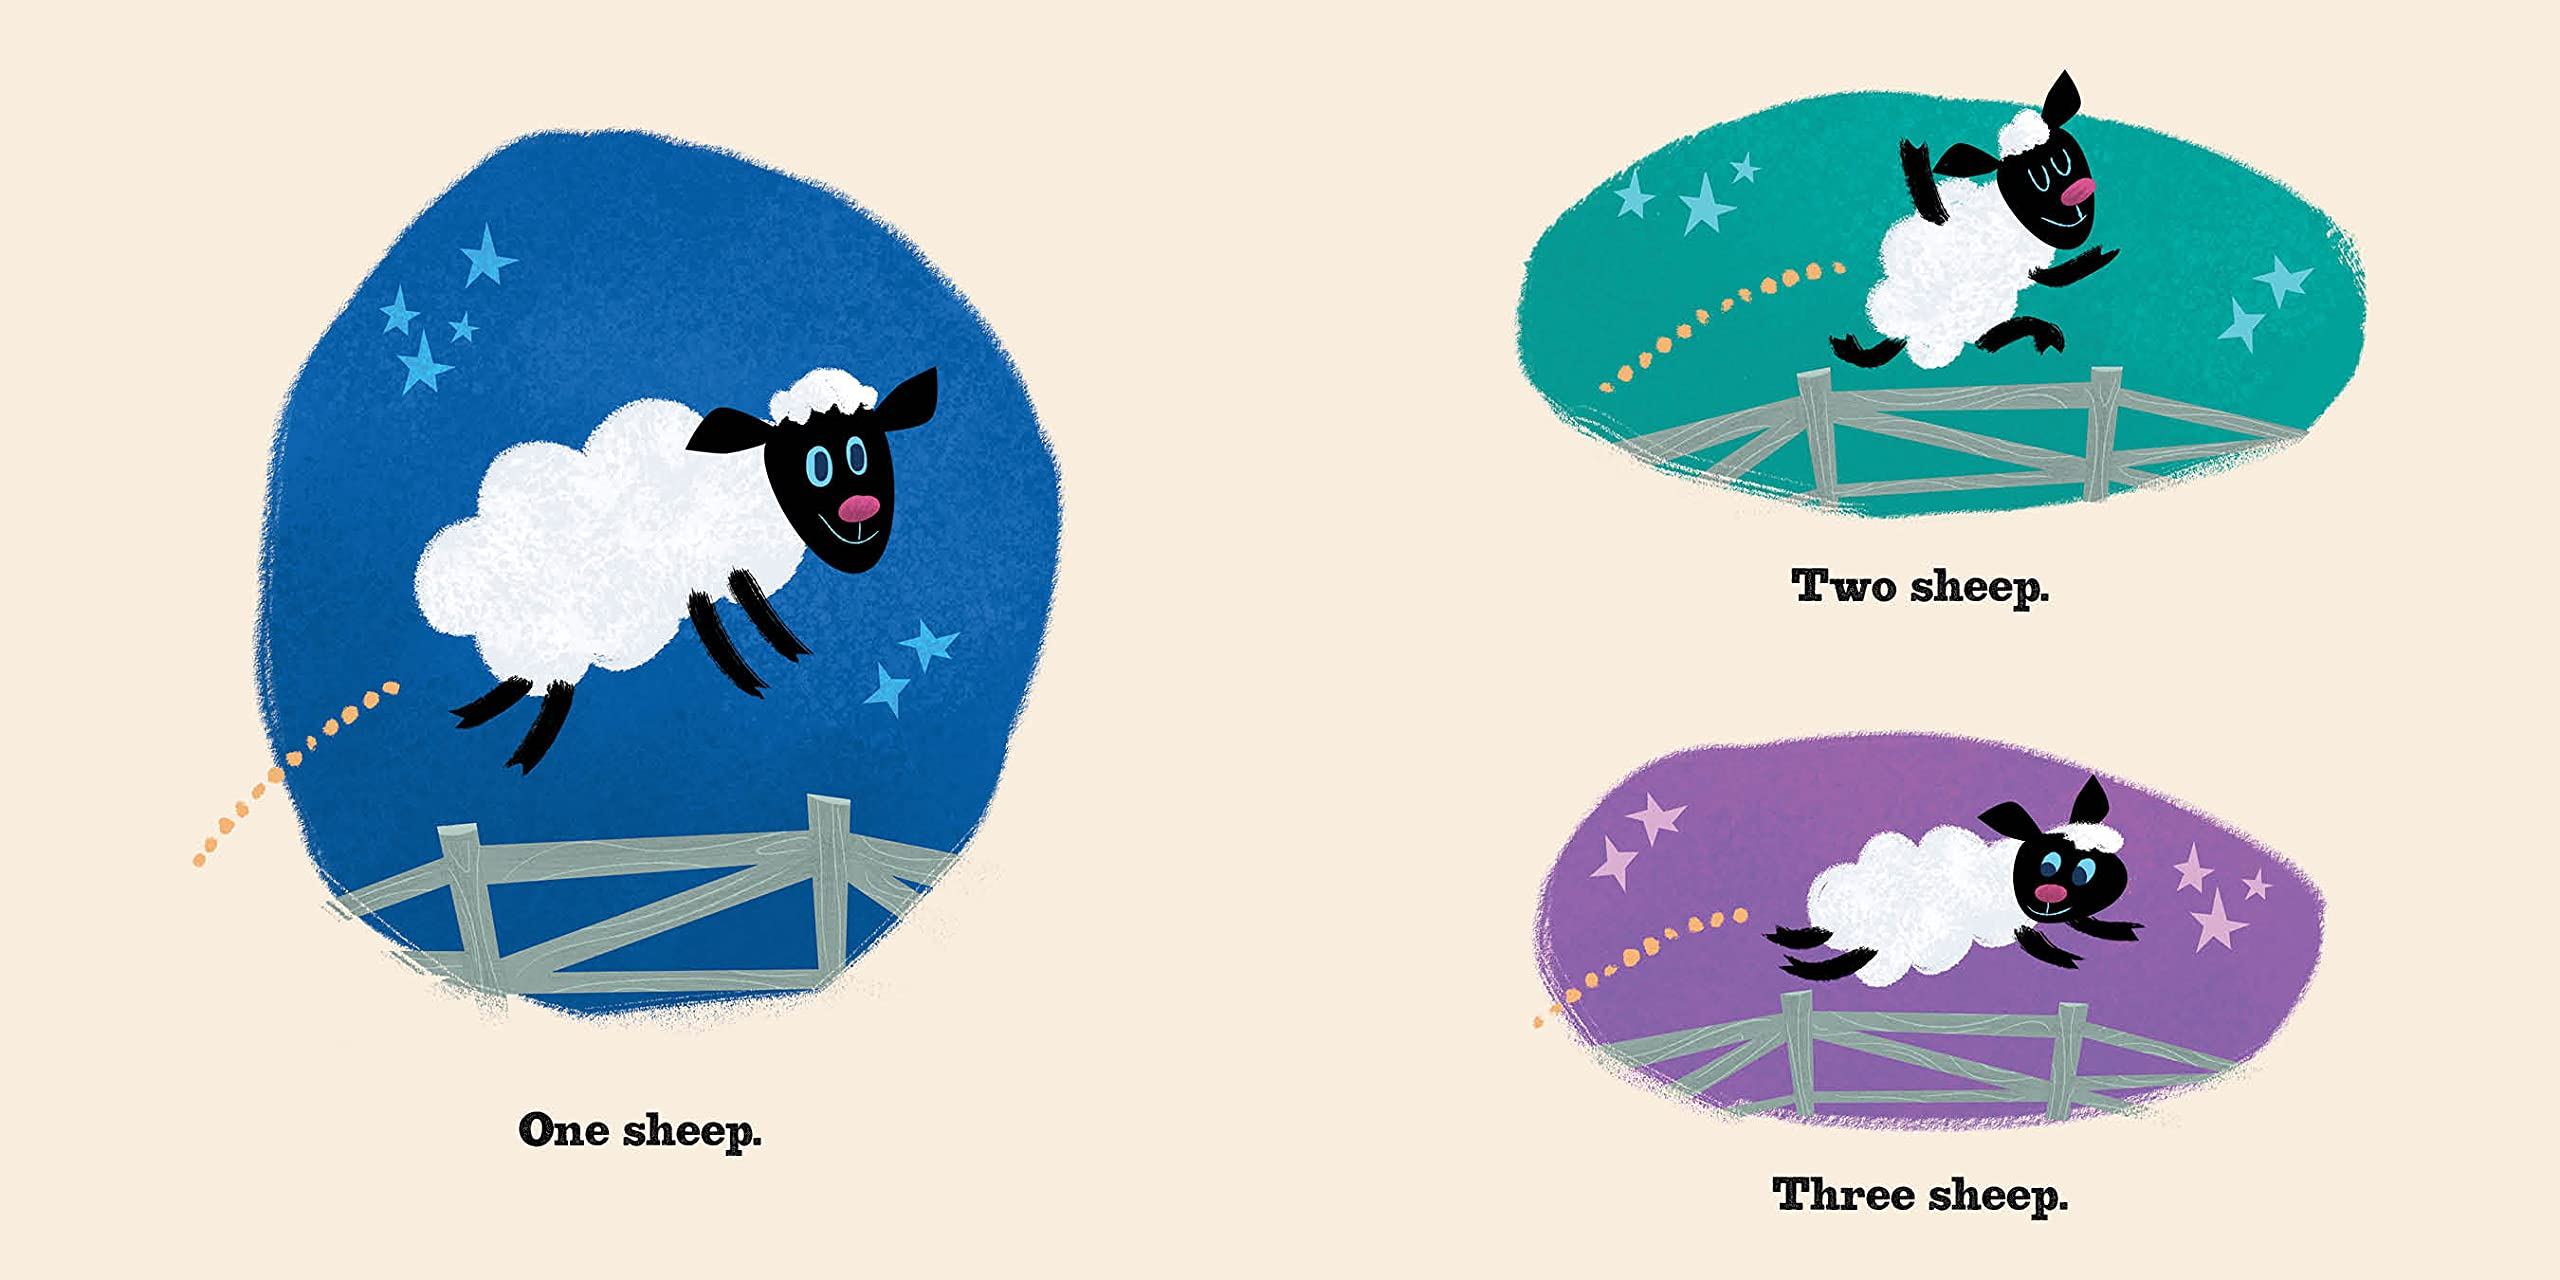 celebrate-picture-books-picture-book-review-one-sheep-two-sheep-fence